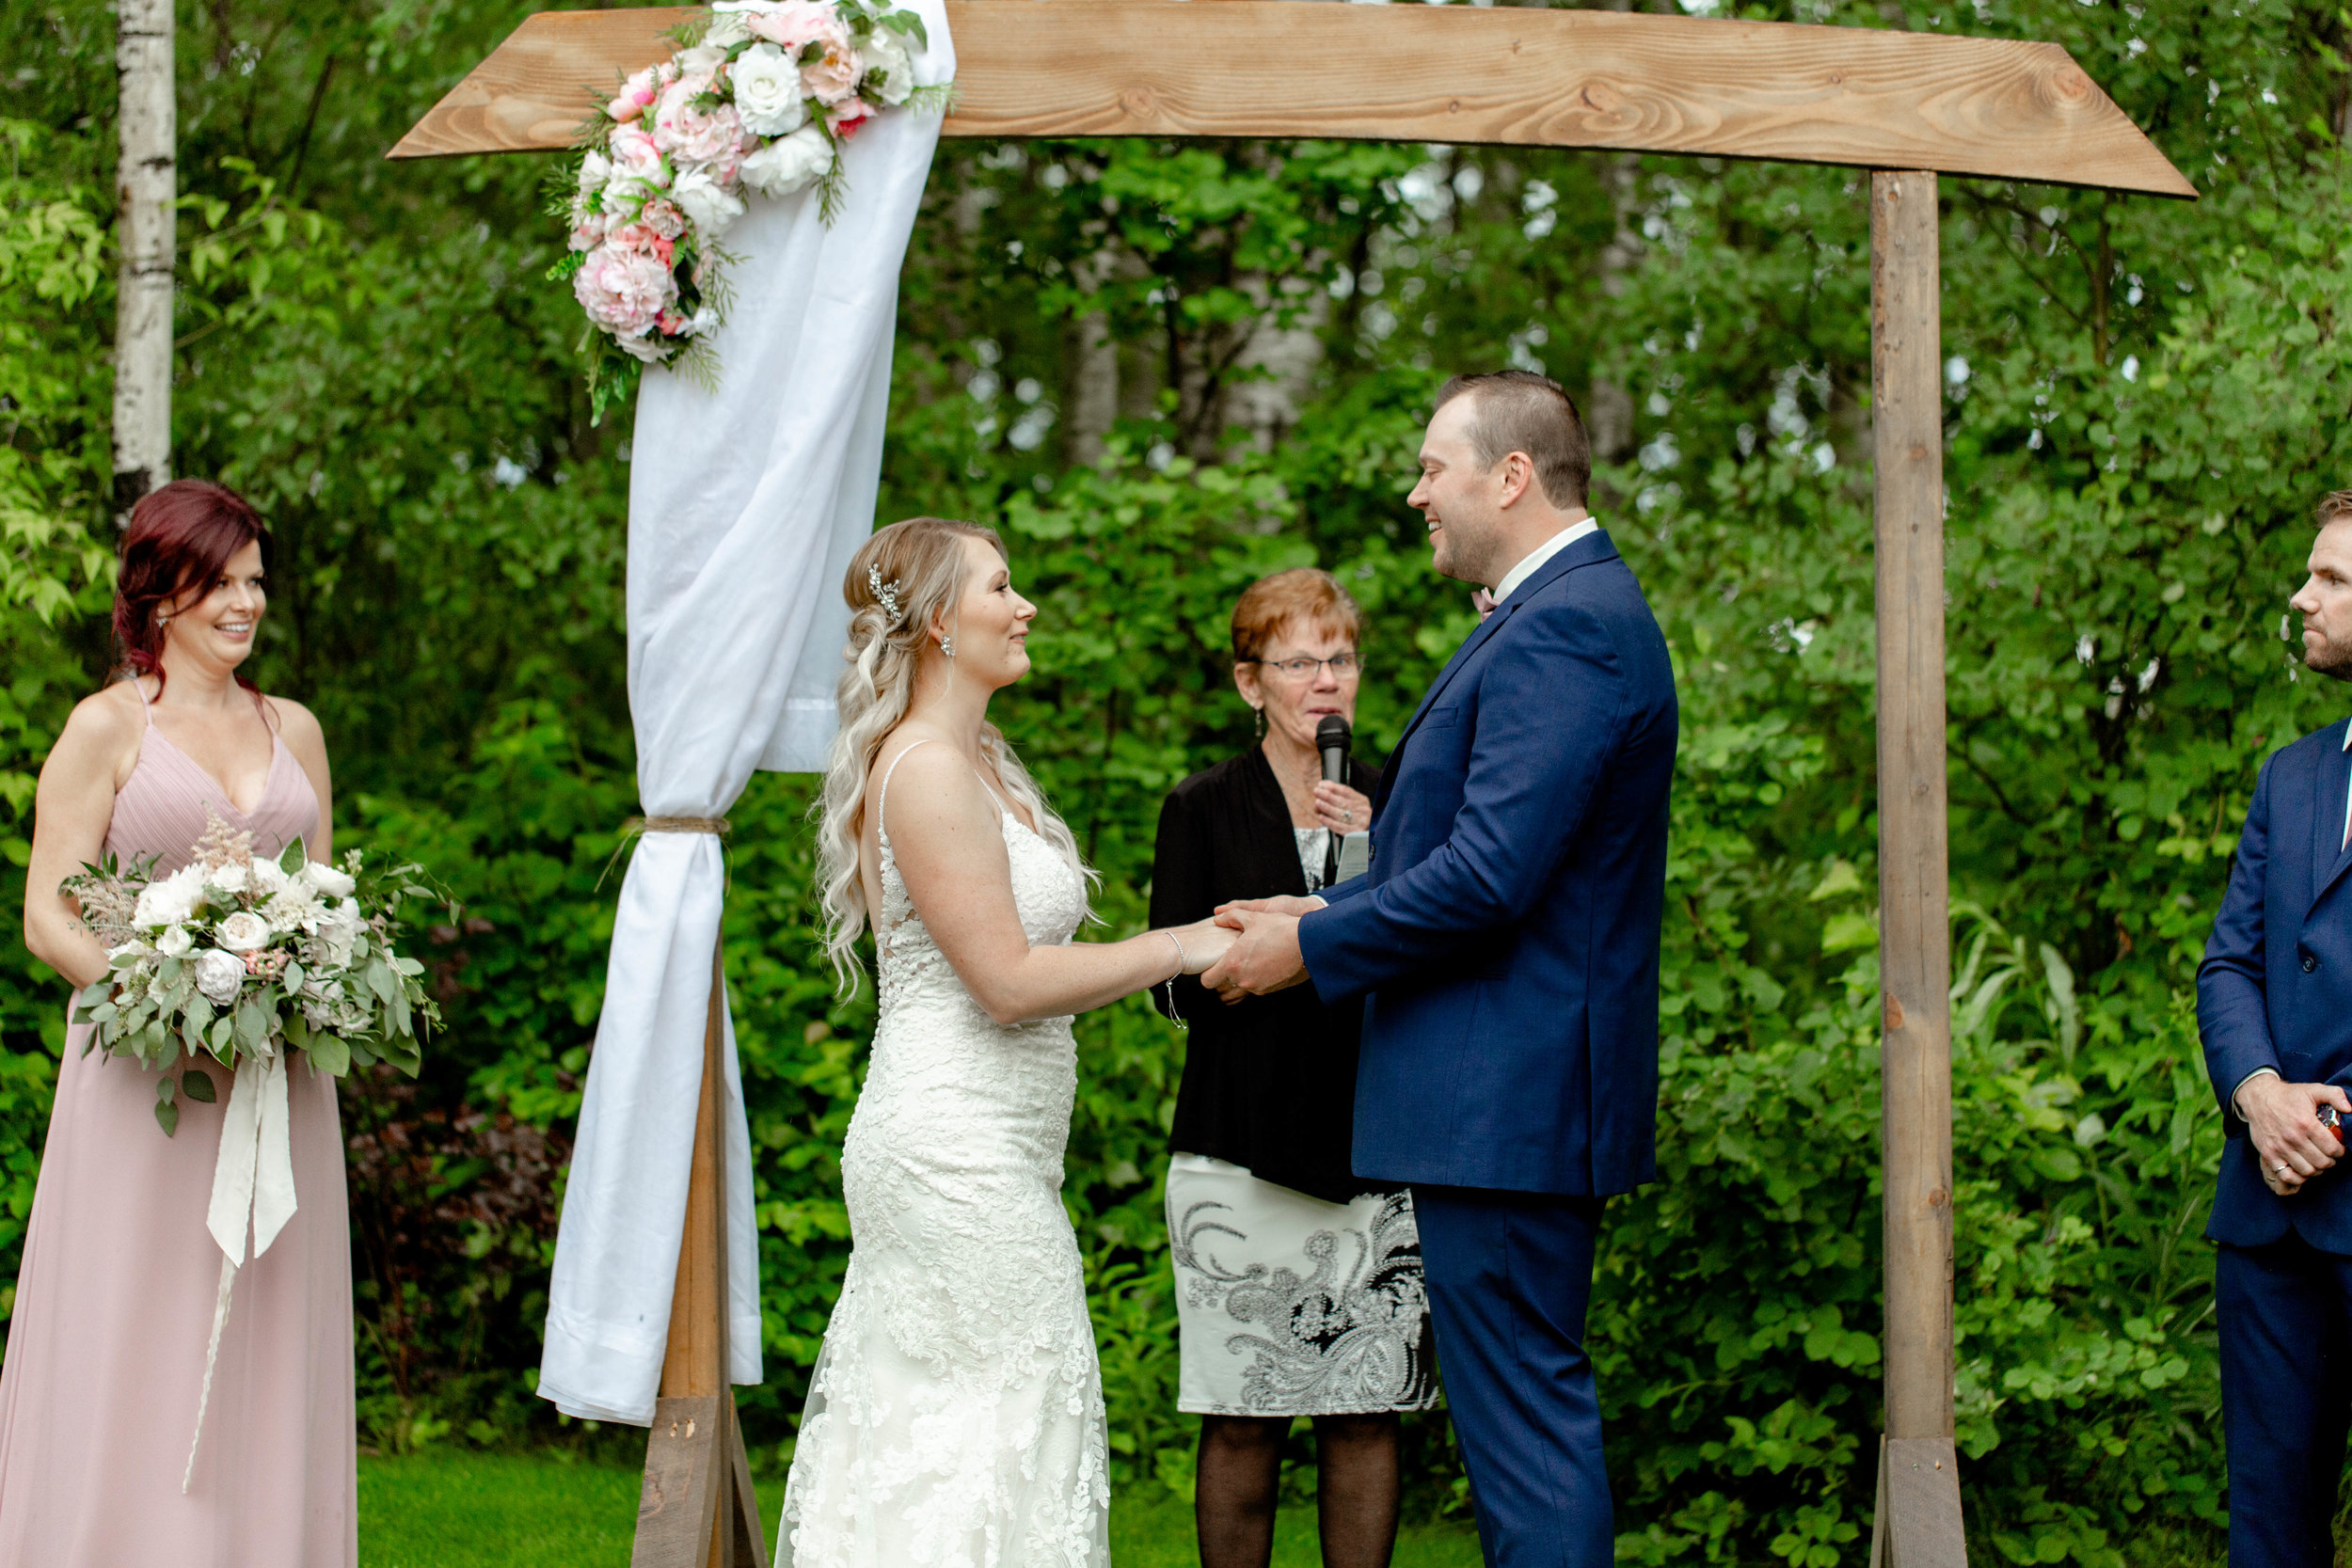 treu-ceremony-74.jpg